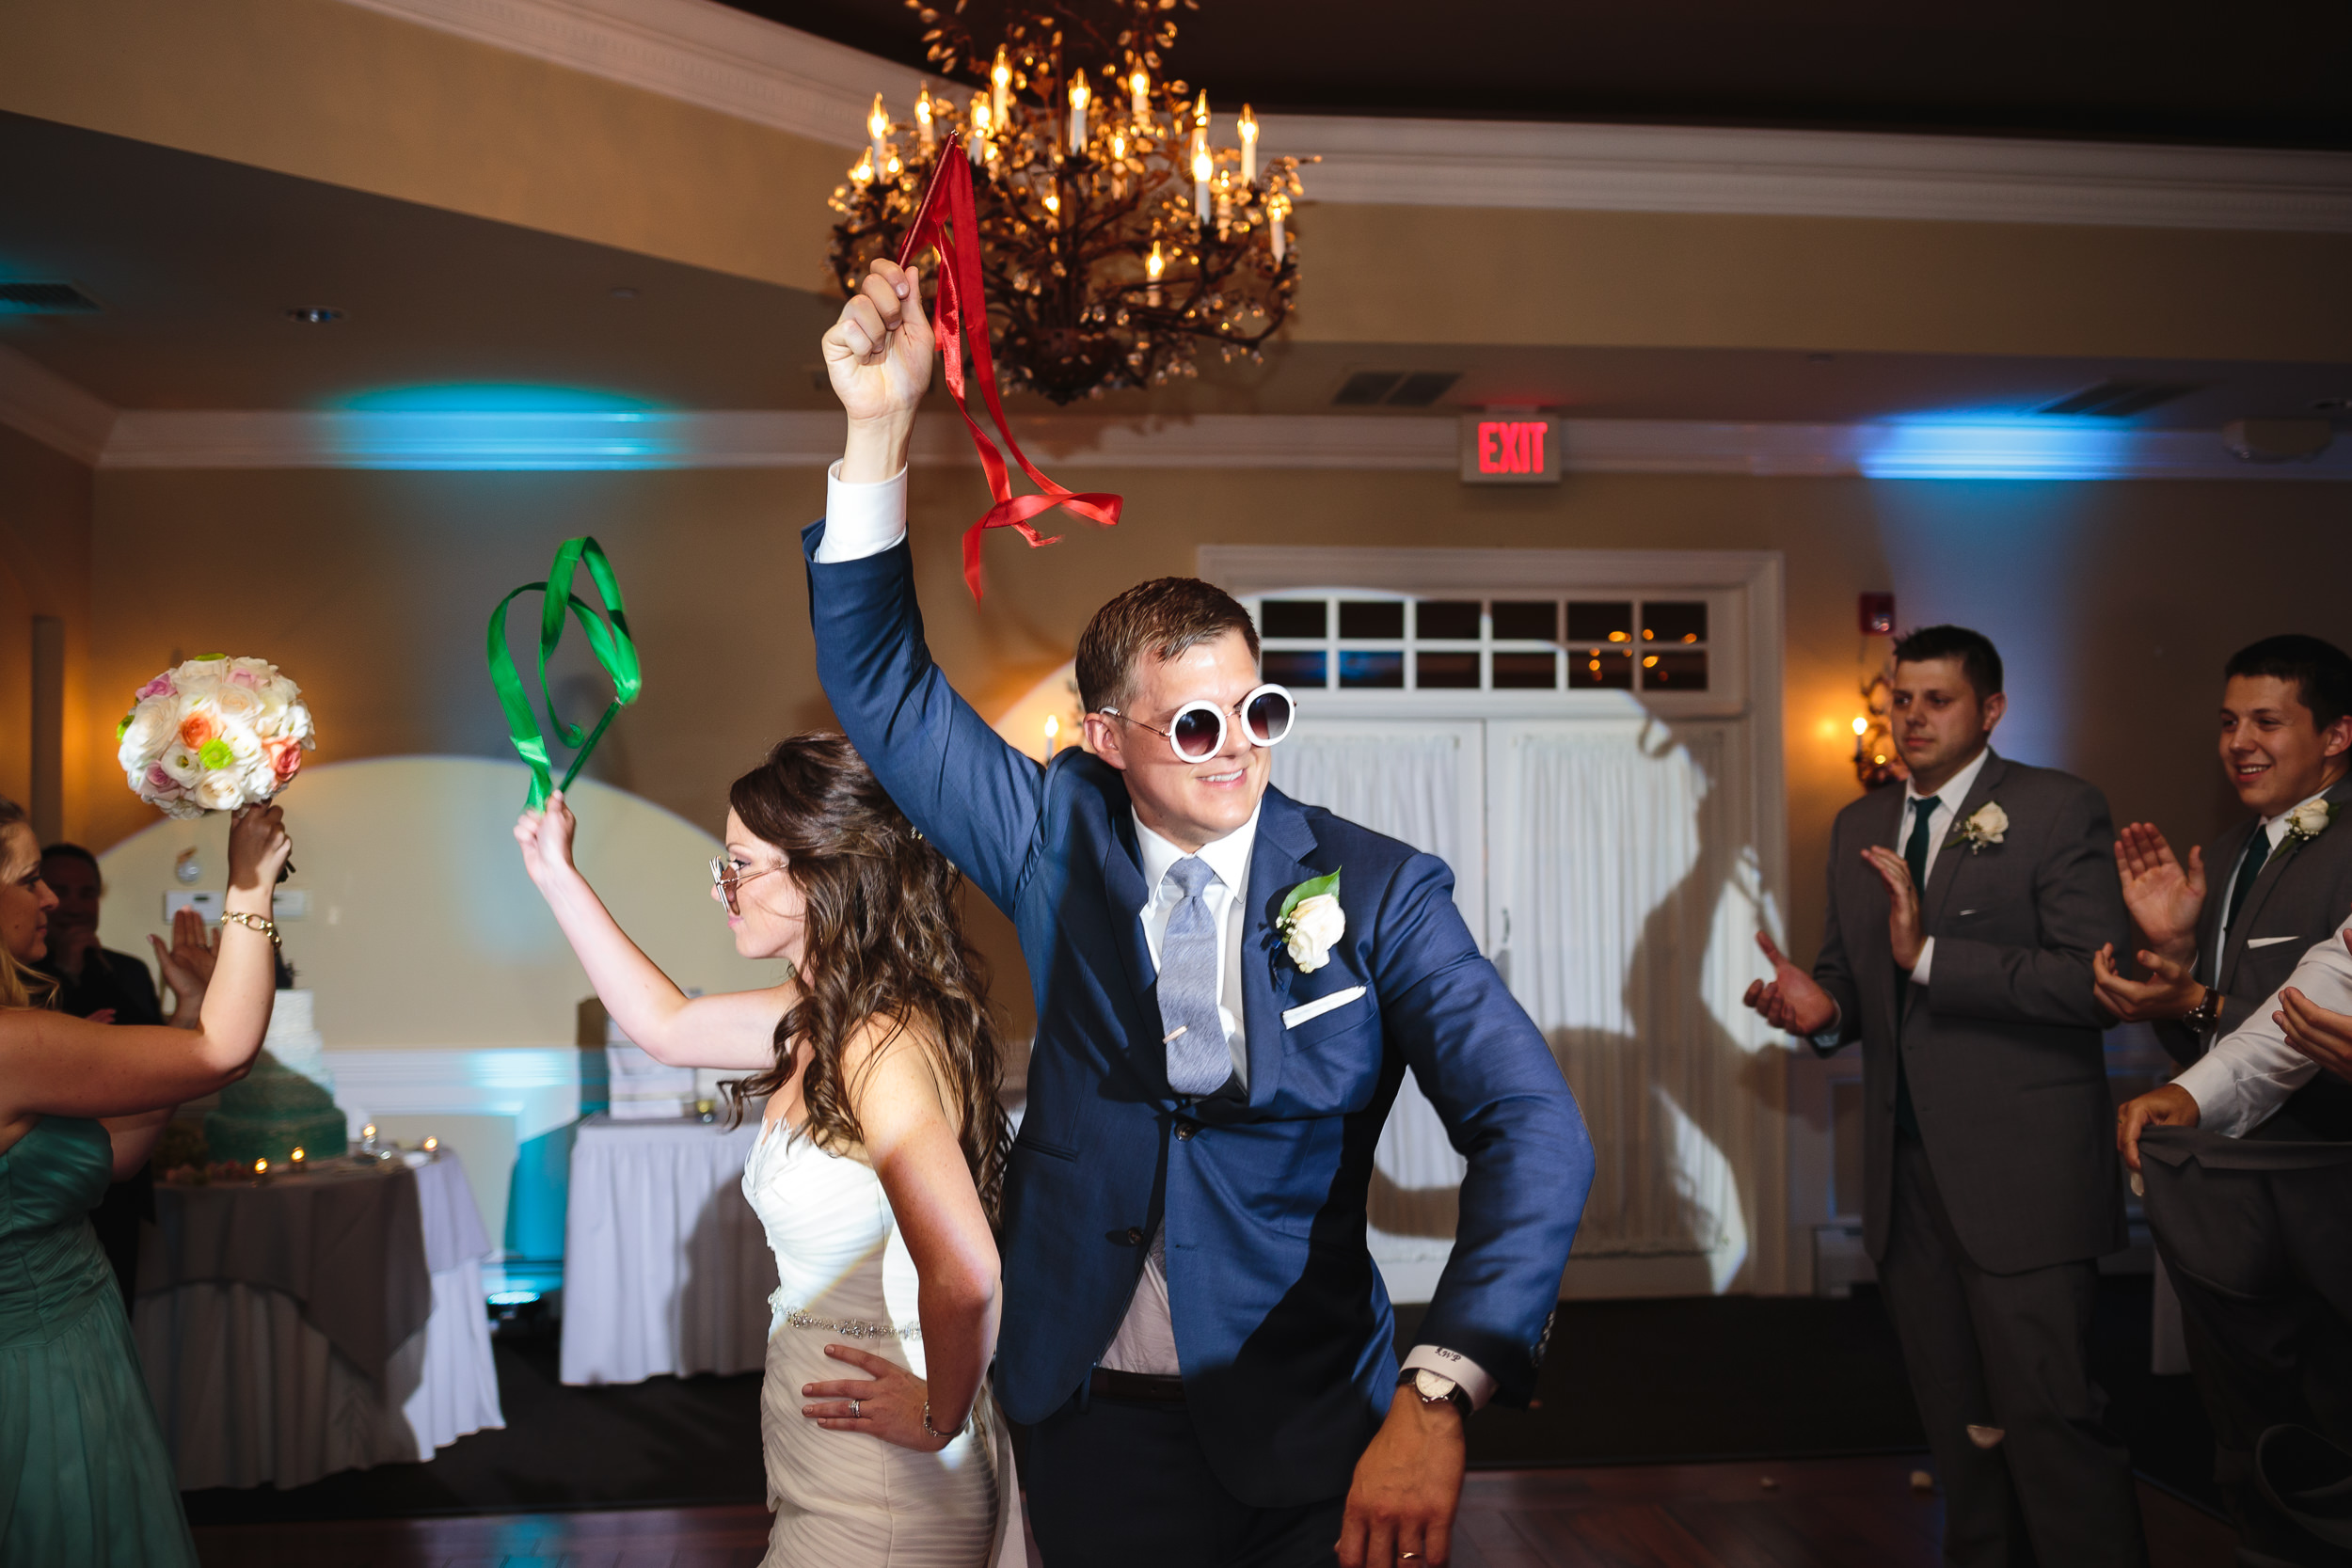 wedding reception bride groom entrance mountain lakes club nj